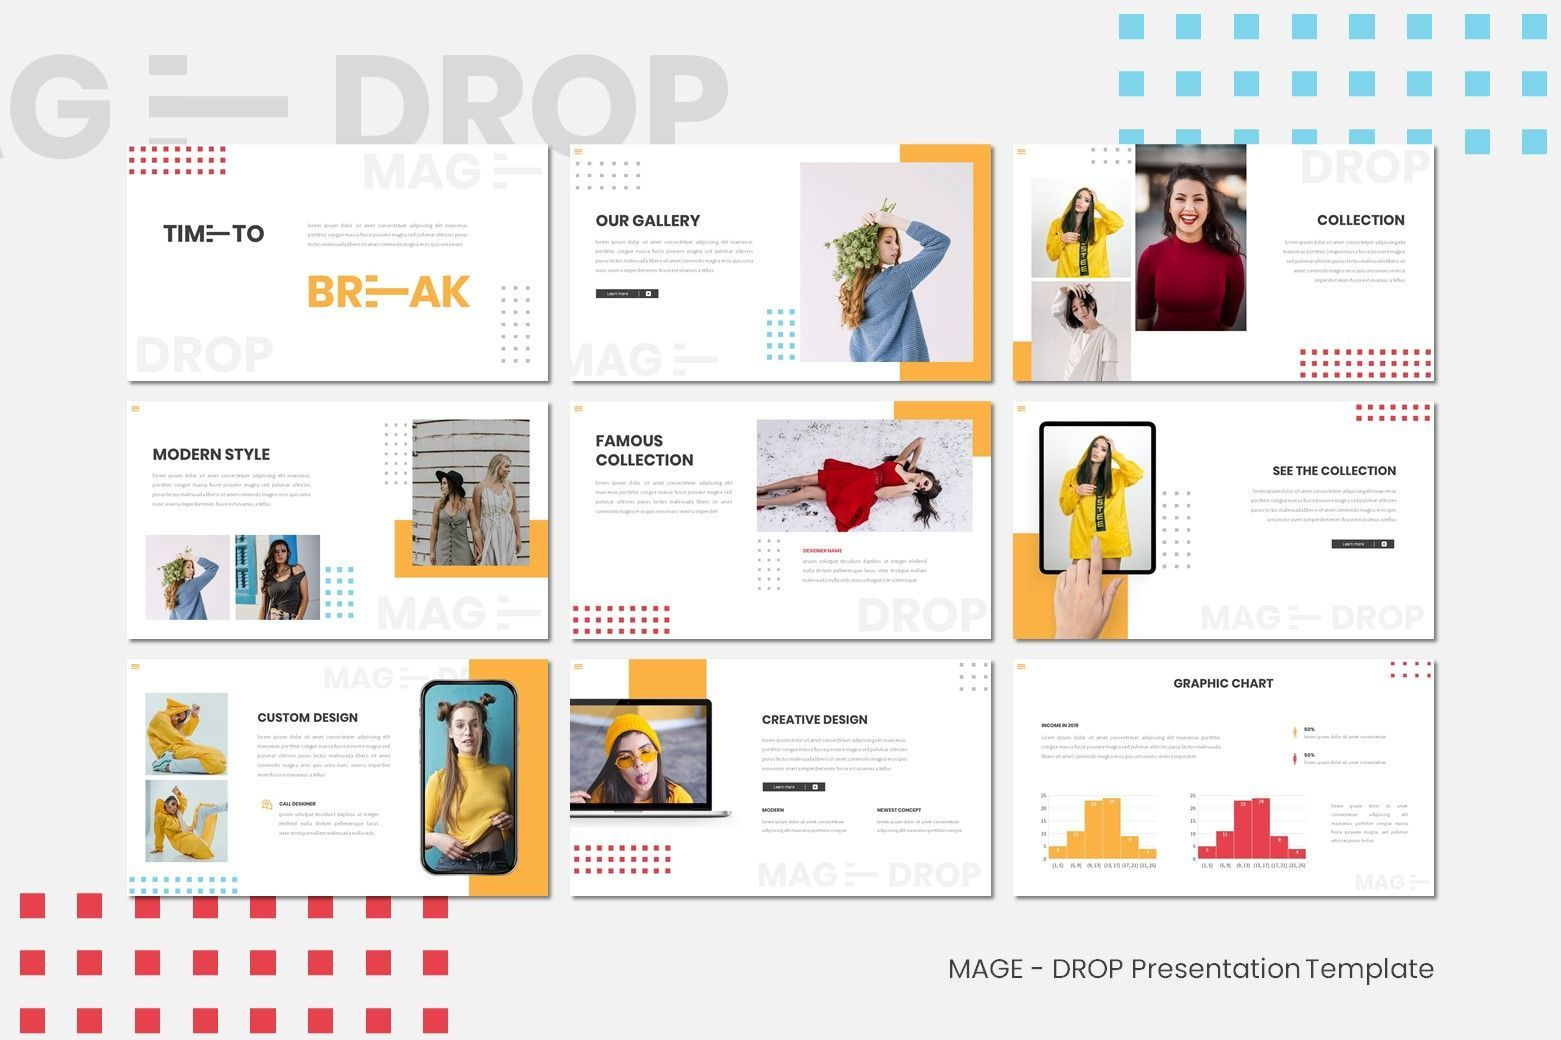 Mage Drop - Google Slides Template, Slide 4, 07997, Presentation Templates — PoweredTemplate.com